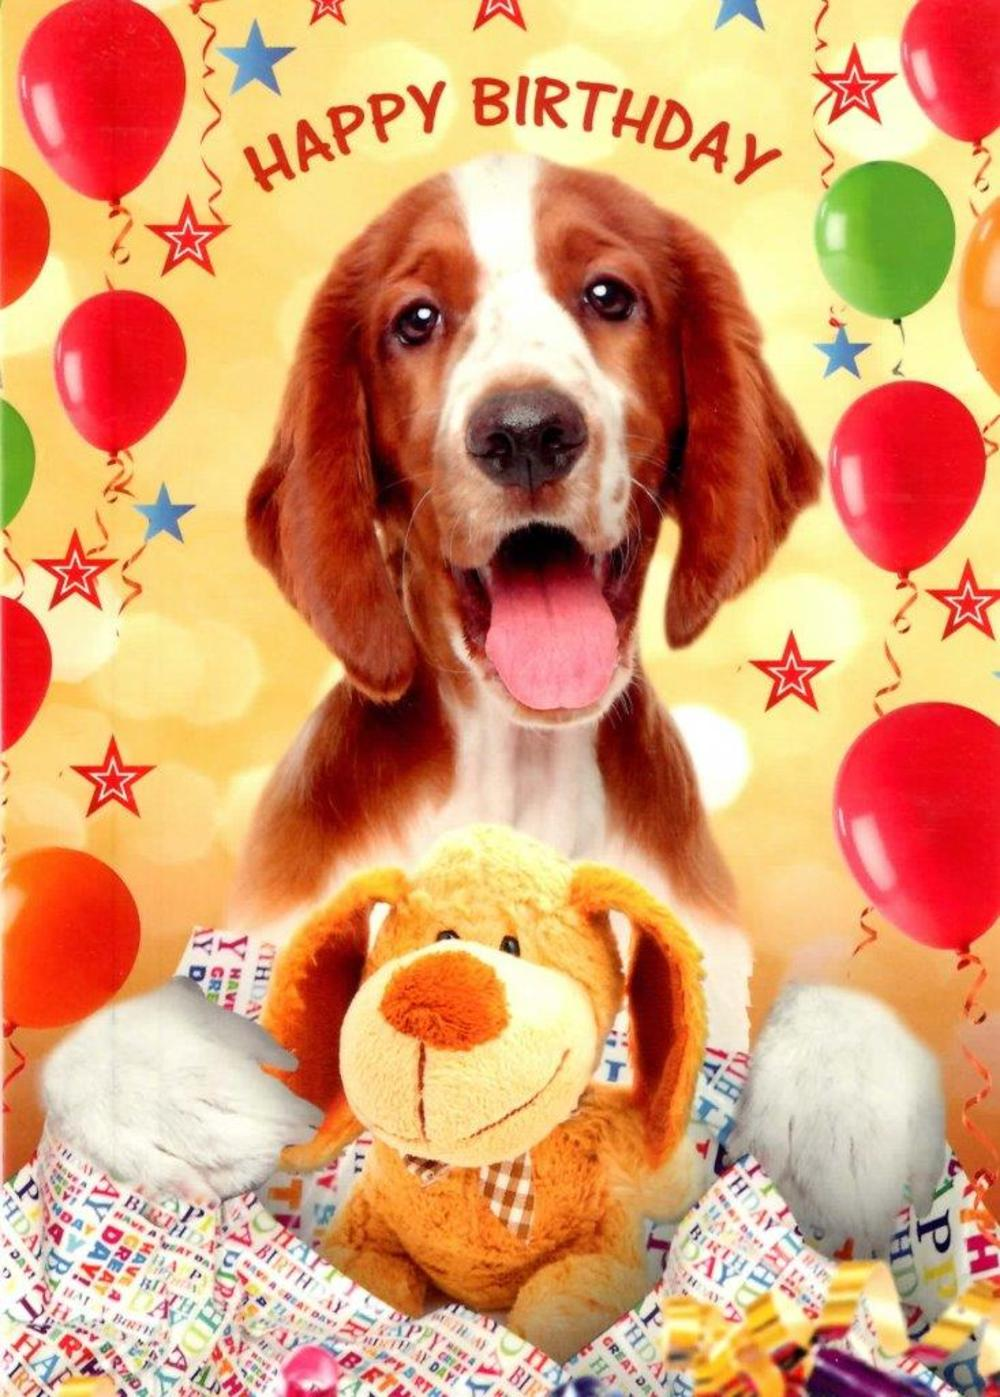 Cute dog happy birthday greeting card cards love kates cute dog happy birthday greeting card kristyandbryce Choice Image